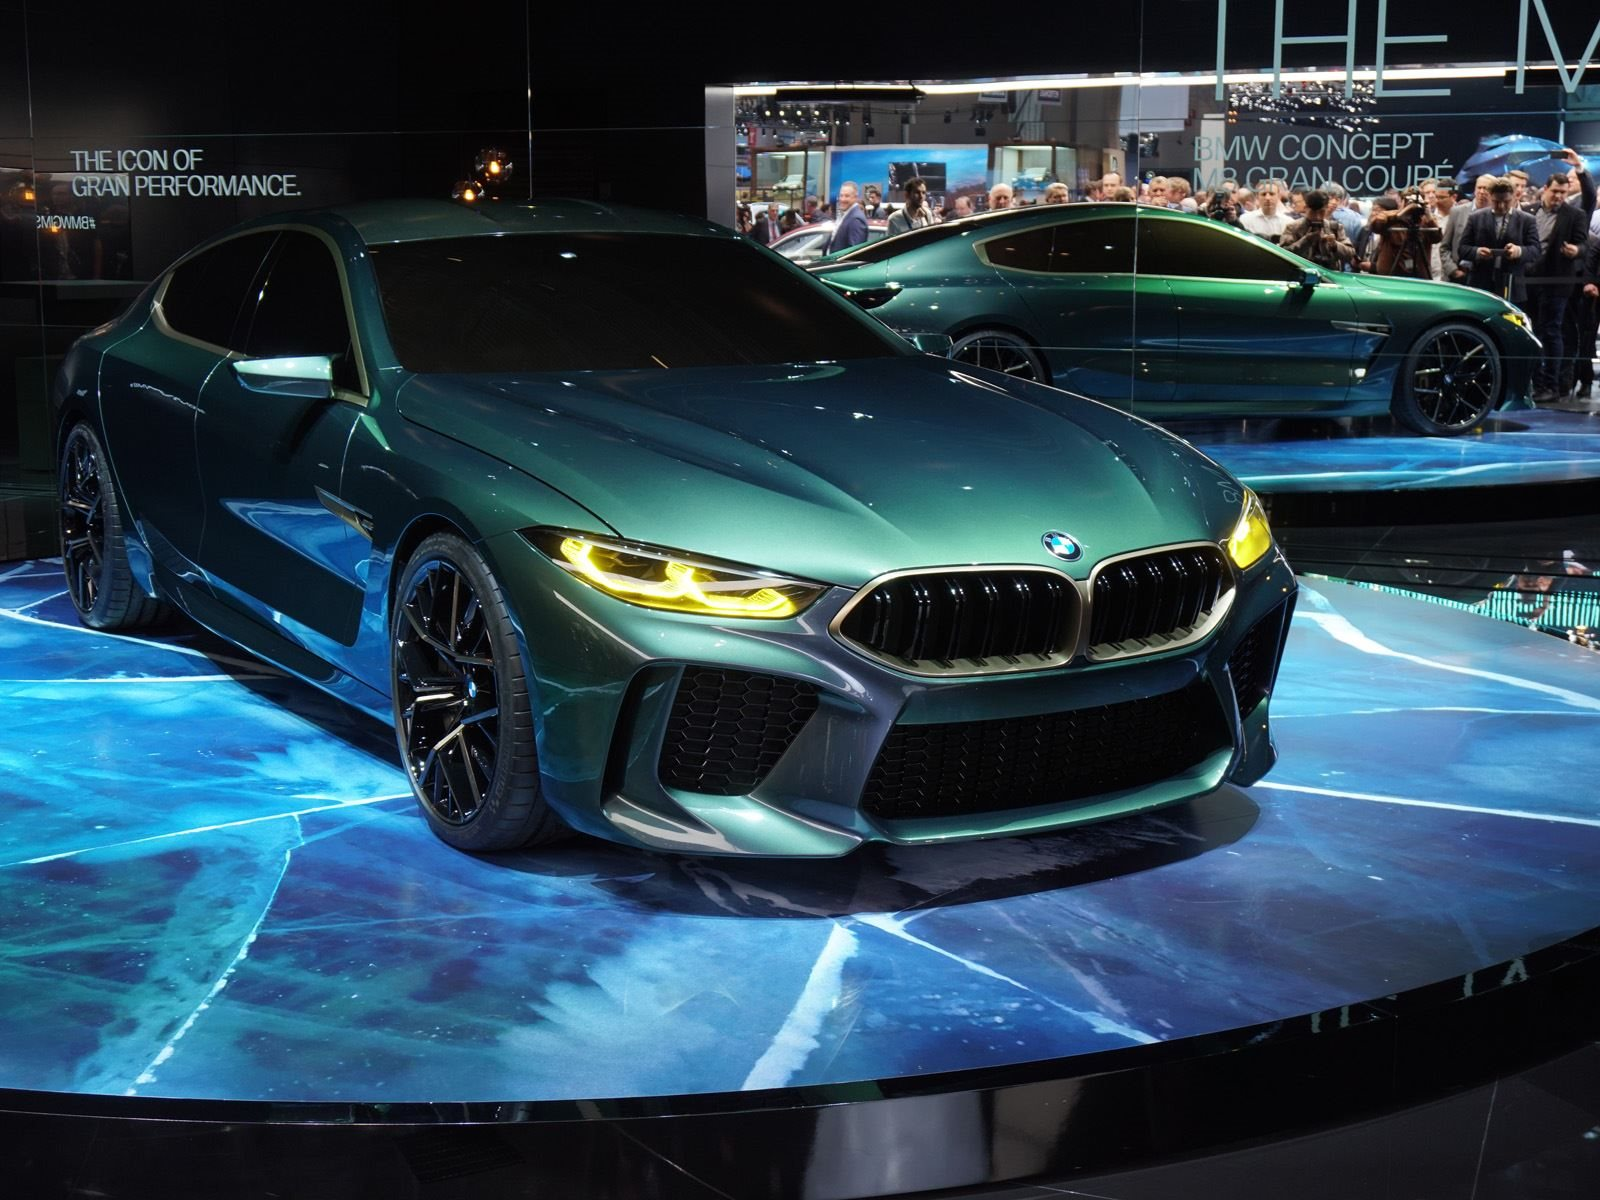 BMW Makes Us Envious With Green Concept M8 Gran Coupe - CarBuzz